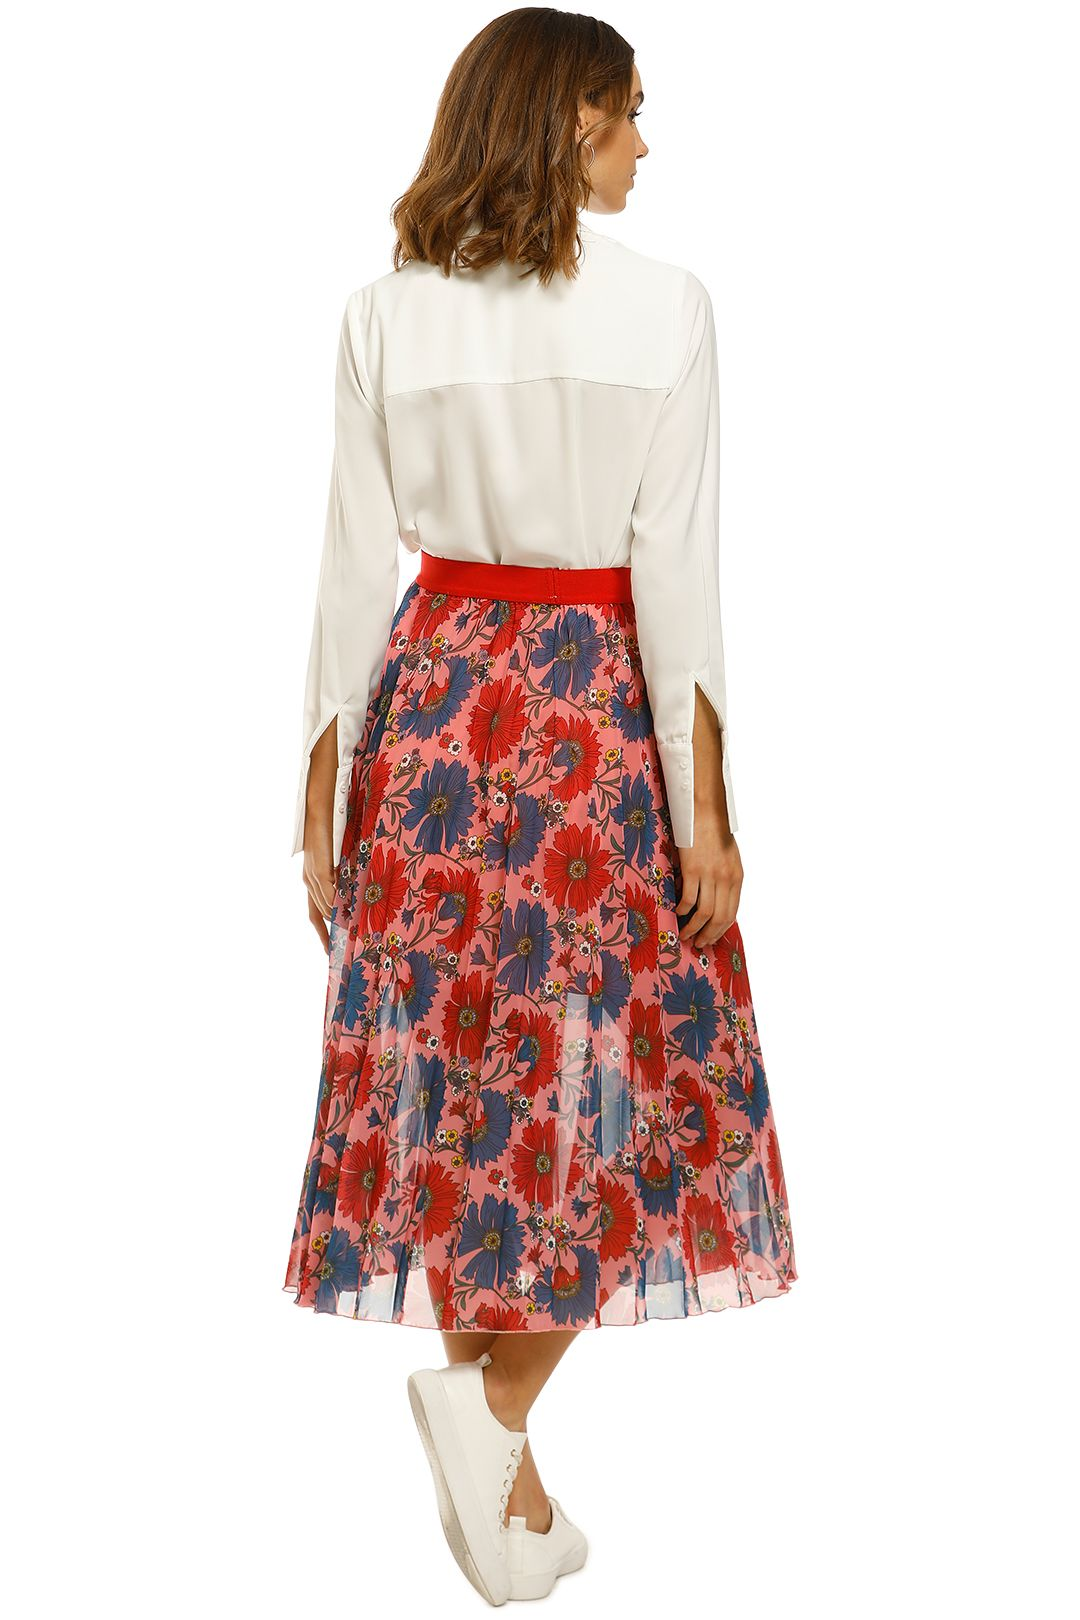 Curate-by-Trelise-Cooper-Side-Pleat-Skirt-Back